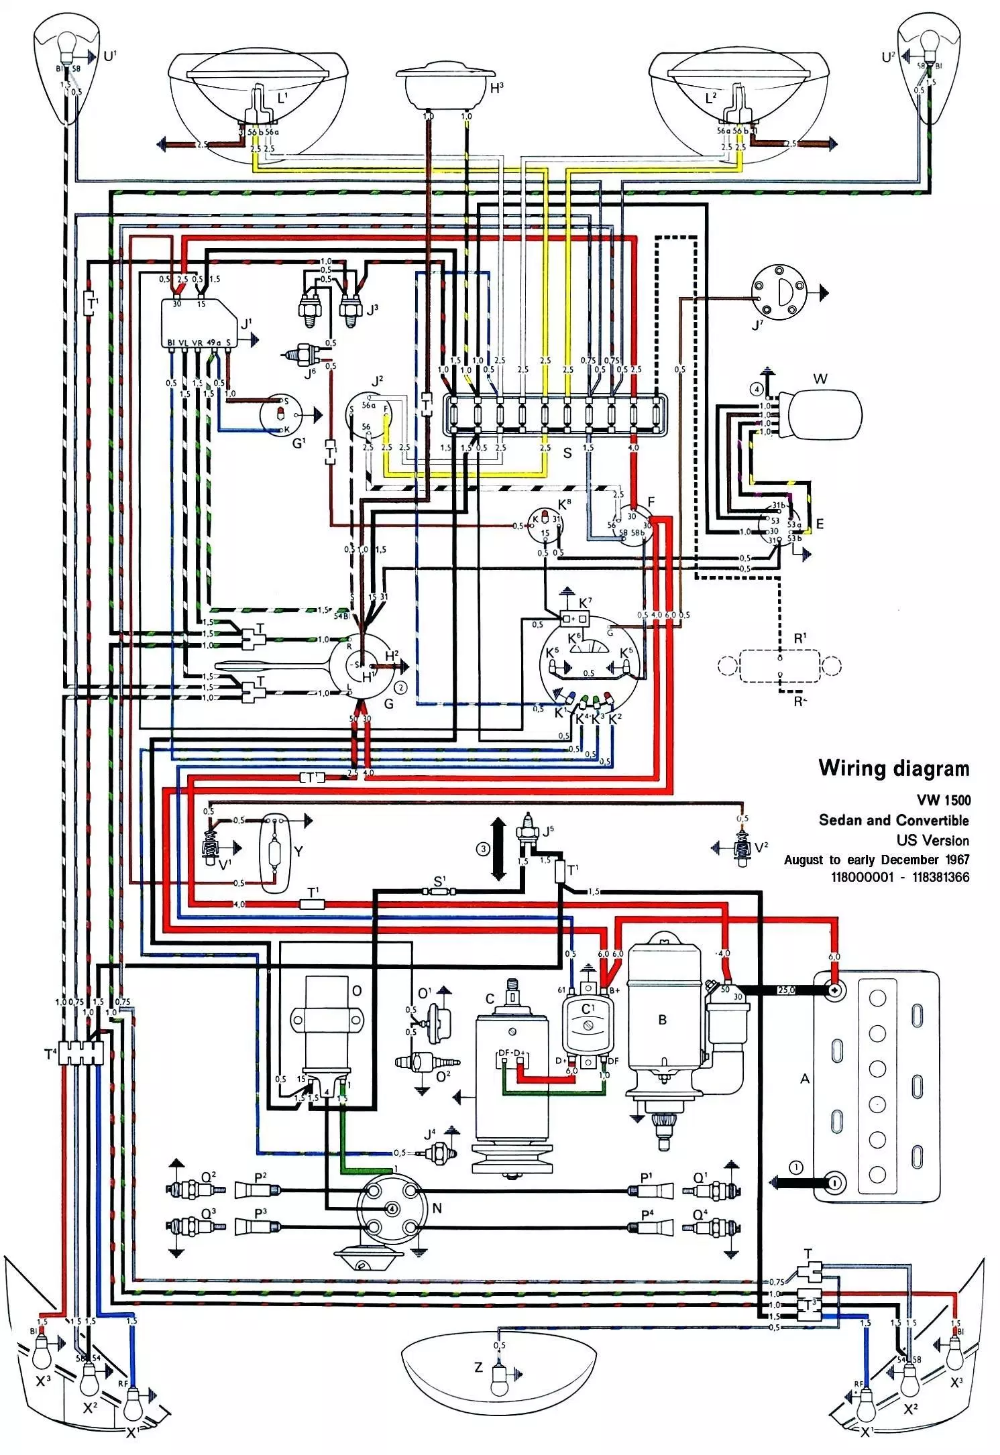 1994 vw jetta ignition wiring diagram full hd version wiring diagram -  fault-tree-analysis.emballages-sous-vide.fr  diagram database - emballages-sous-vide.fr